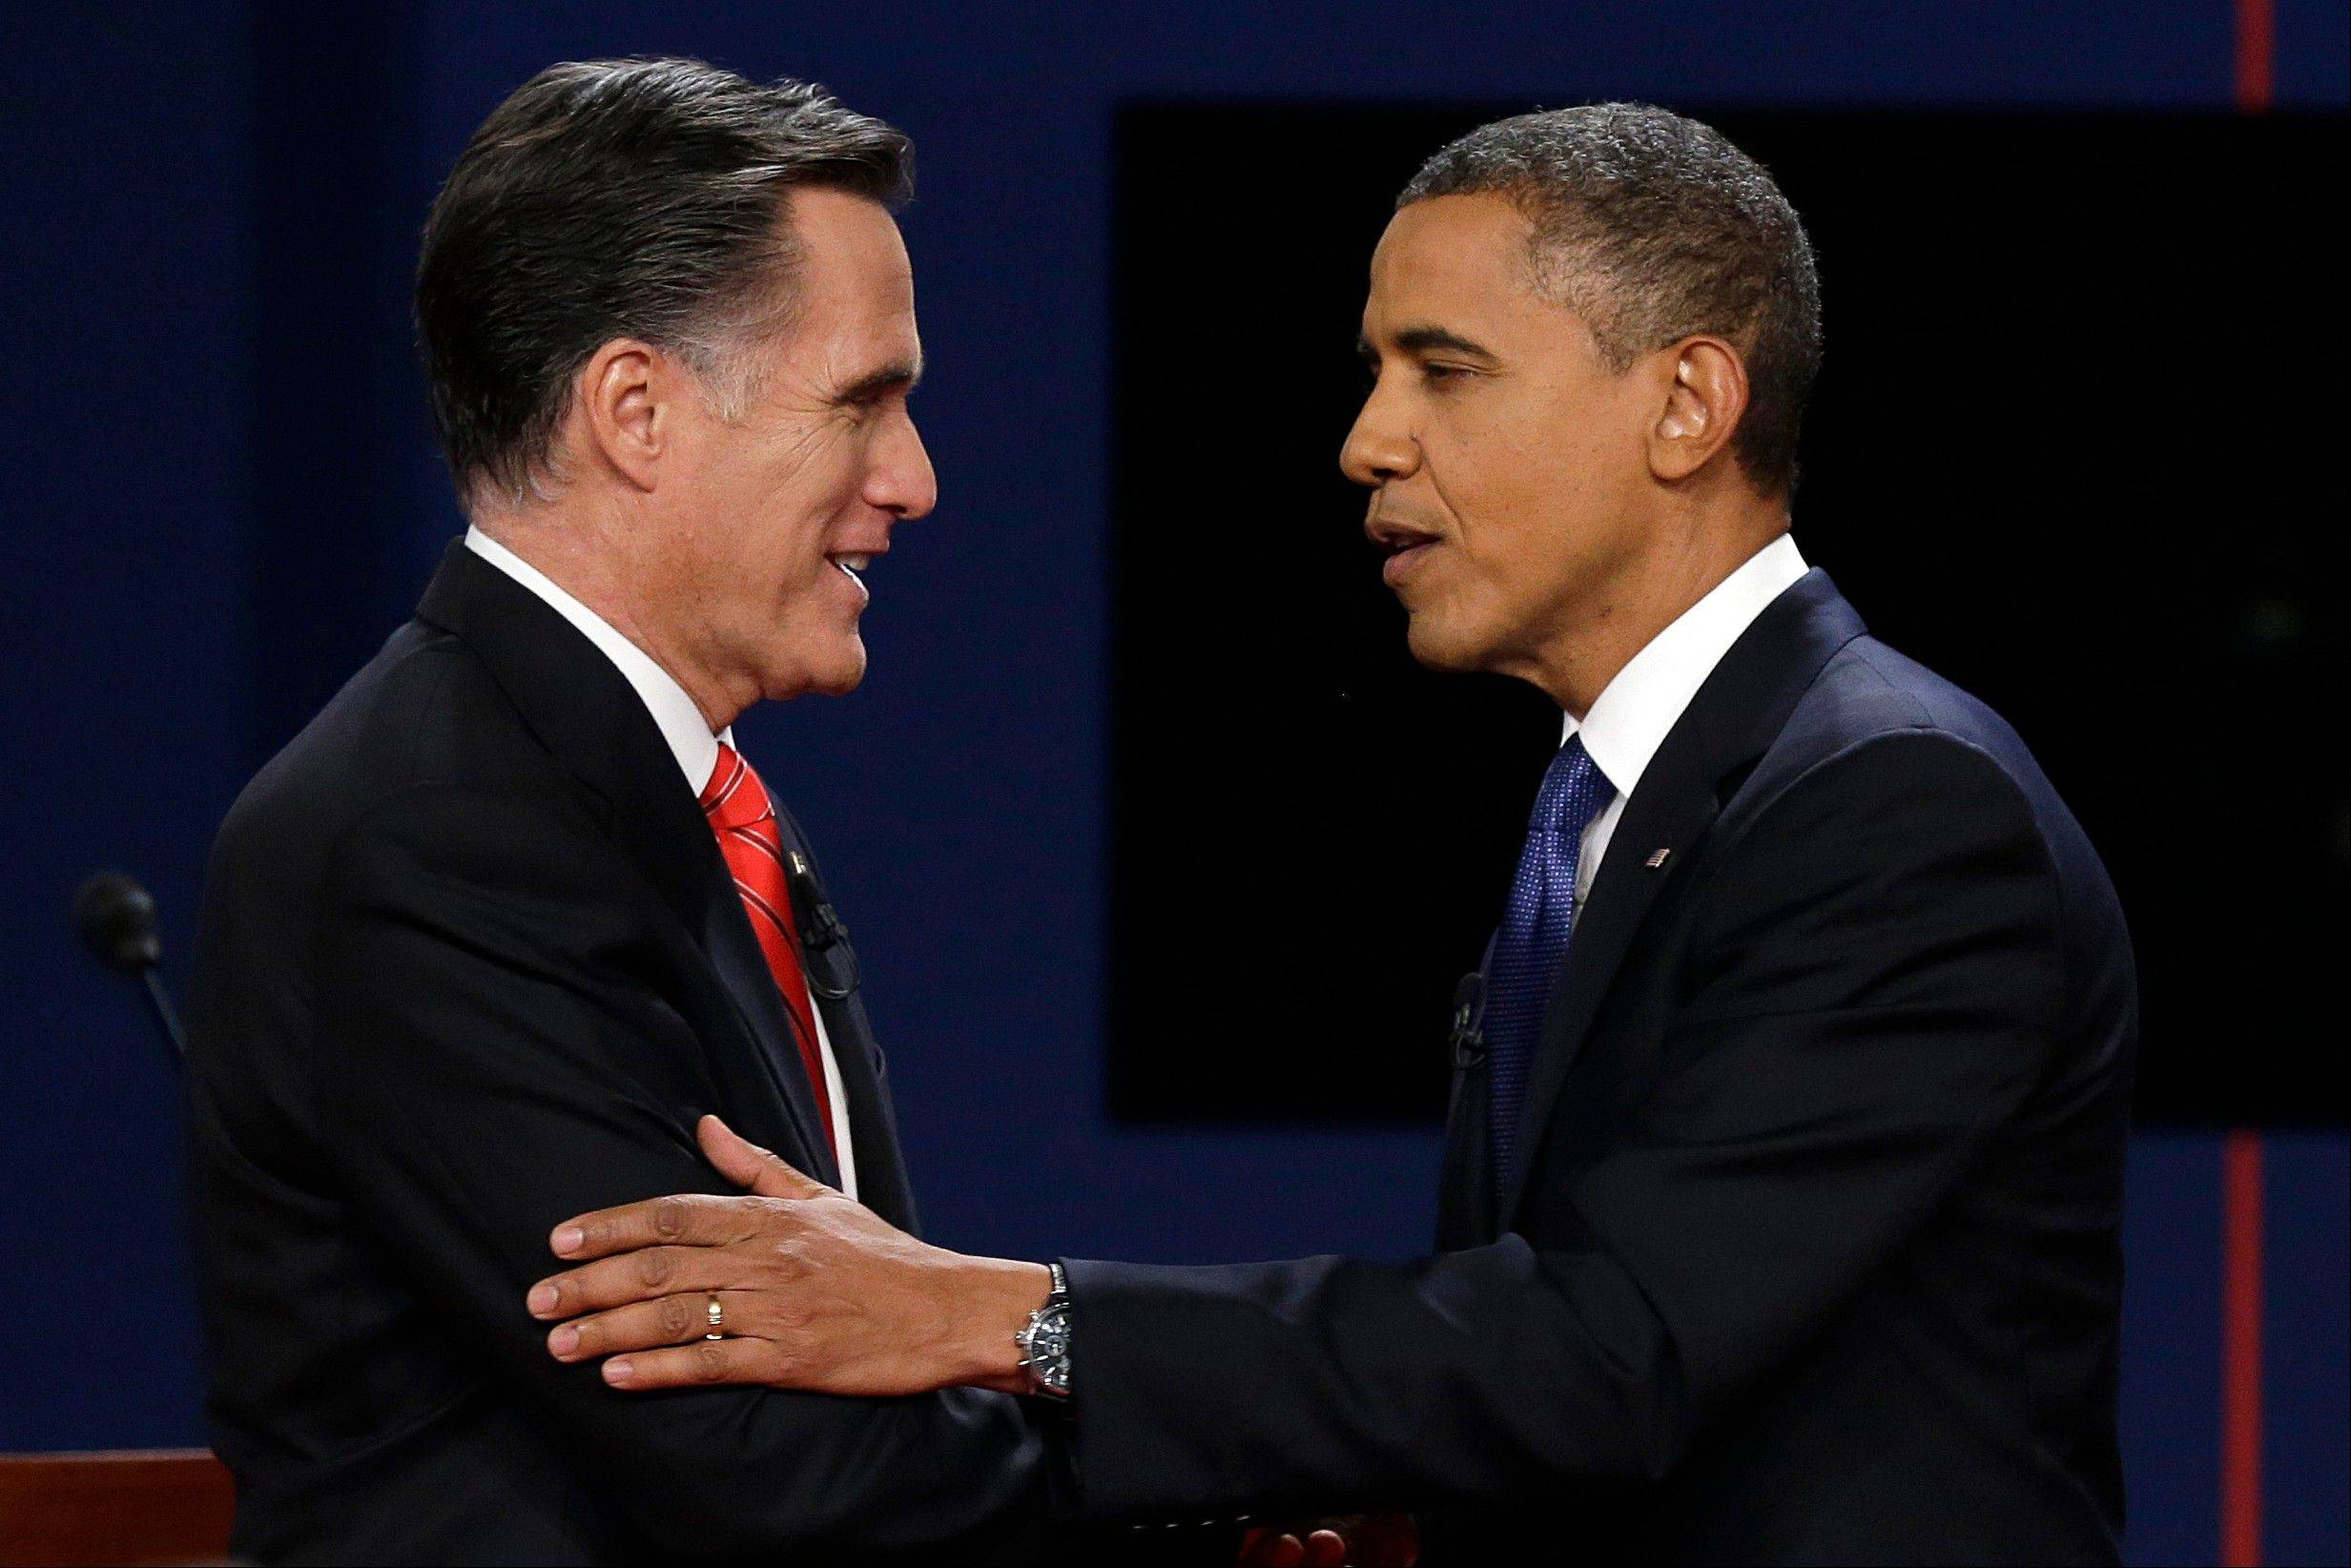 Republican presidential nominee Mitt Romney and President Barack Obama shake hands Wednesday after the first presidential debate at the University of Denver, in Denver. Both men relished the wonky talk, but Mitt Romney also showed the easy confidence a presidential contender needs — and a bit of the salesman's dynamic presentation.